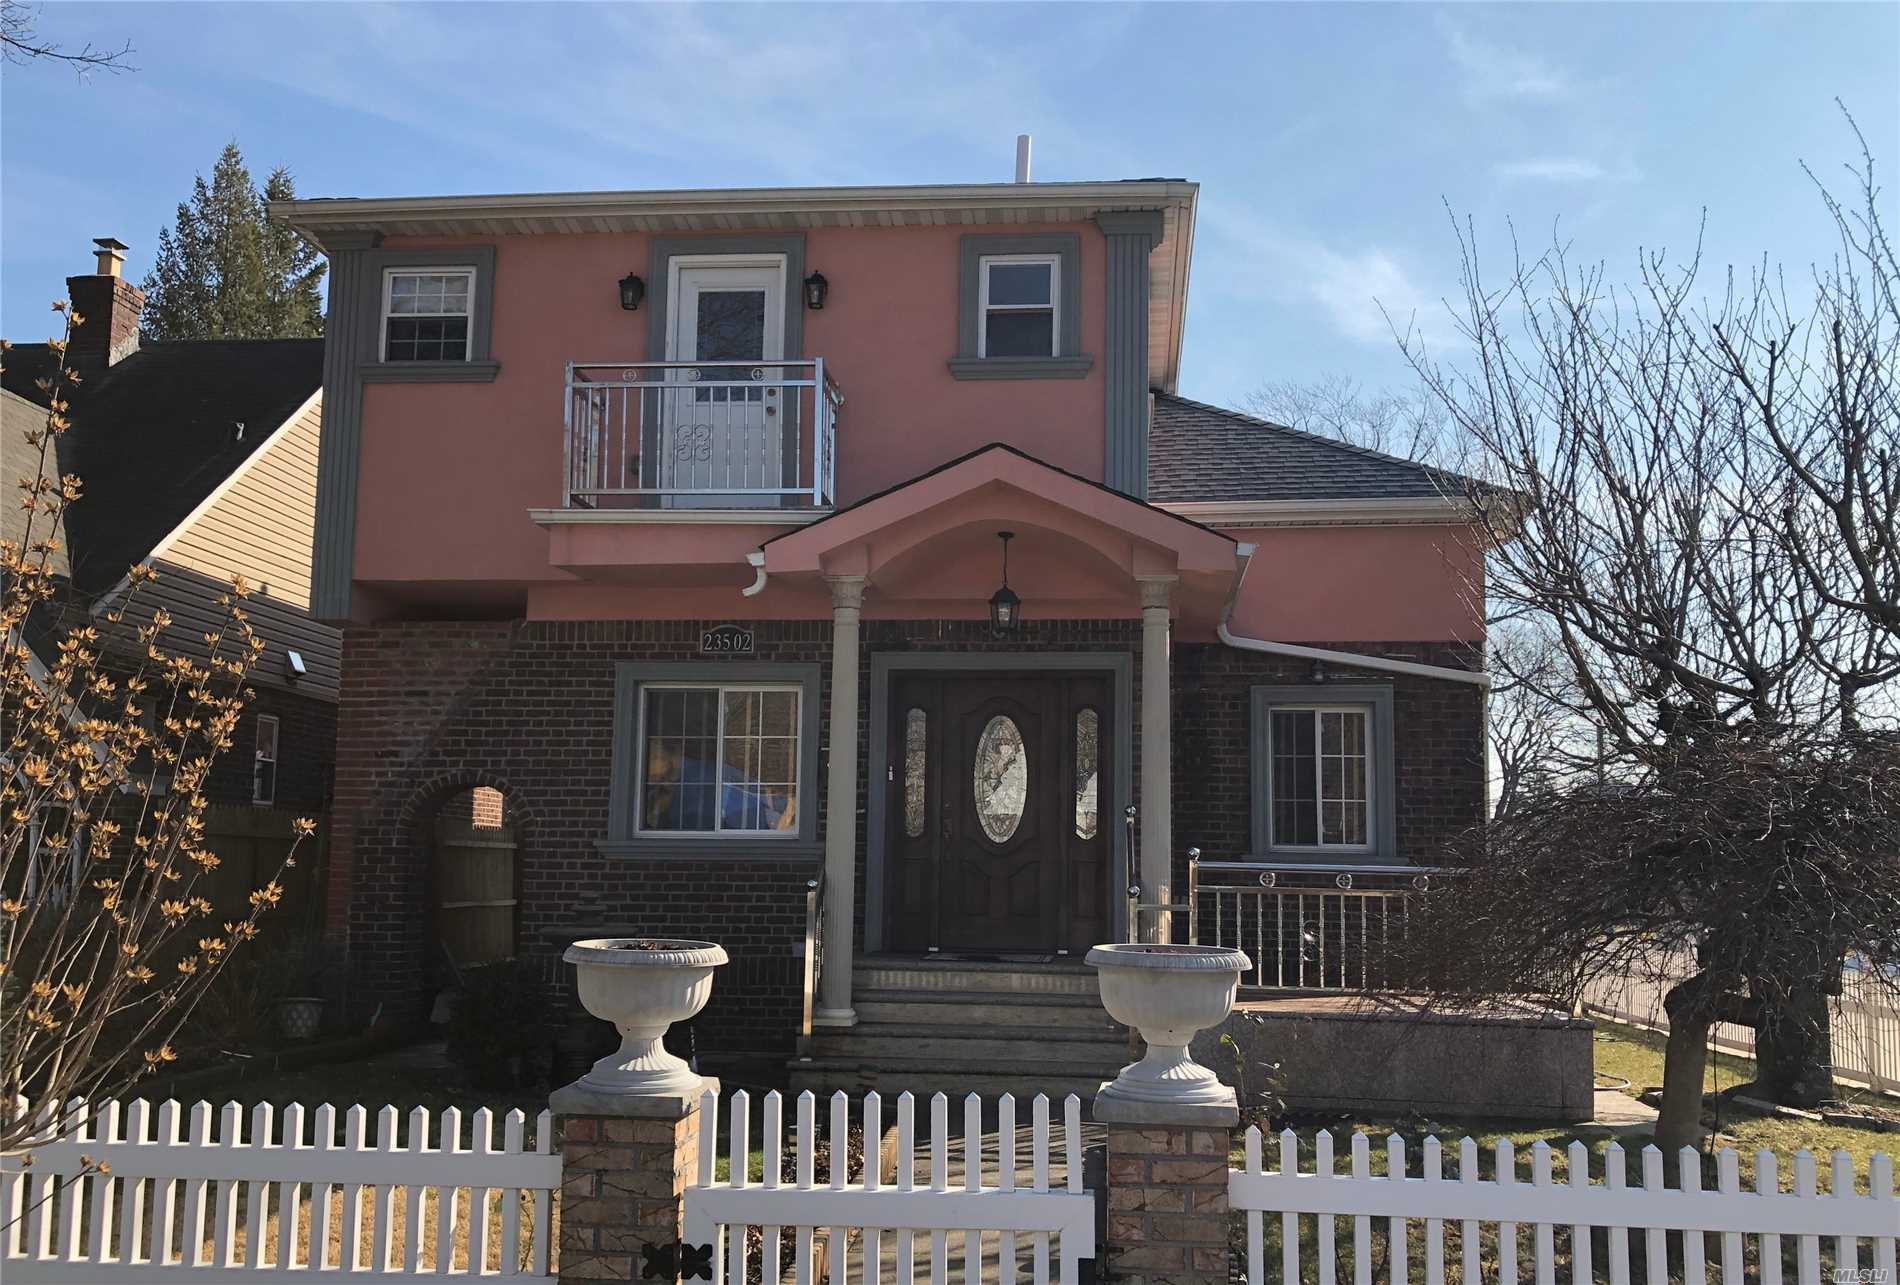 Home Sweet Home. This Lovely Detached Colonial House Sets On The Heart Of Bellerose Manor. Fully Renovated From Top To Bottom. Open Floor Plan. Central Ac, Master Suite.Full Finished Basement. Garage,  Beautiful Front, Back Yard And Much More